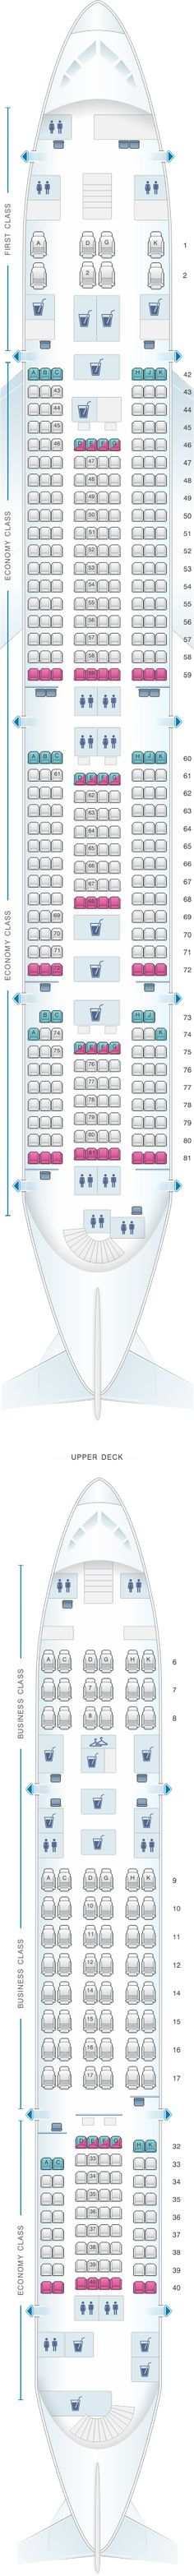 Seat Map Malaysia Airlines Airbus A380 800